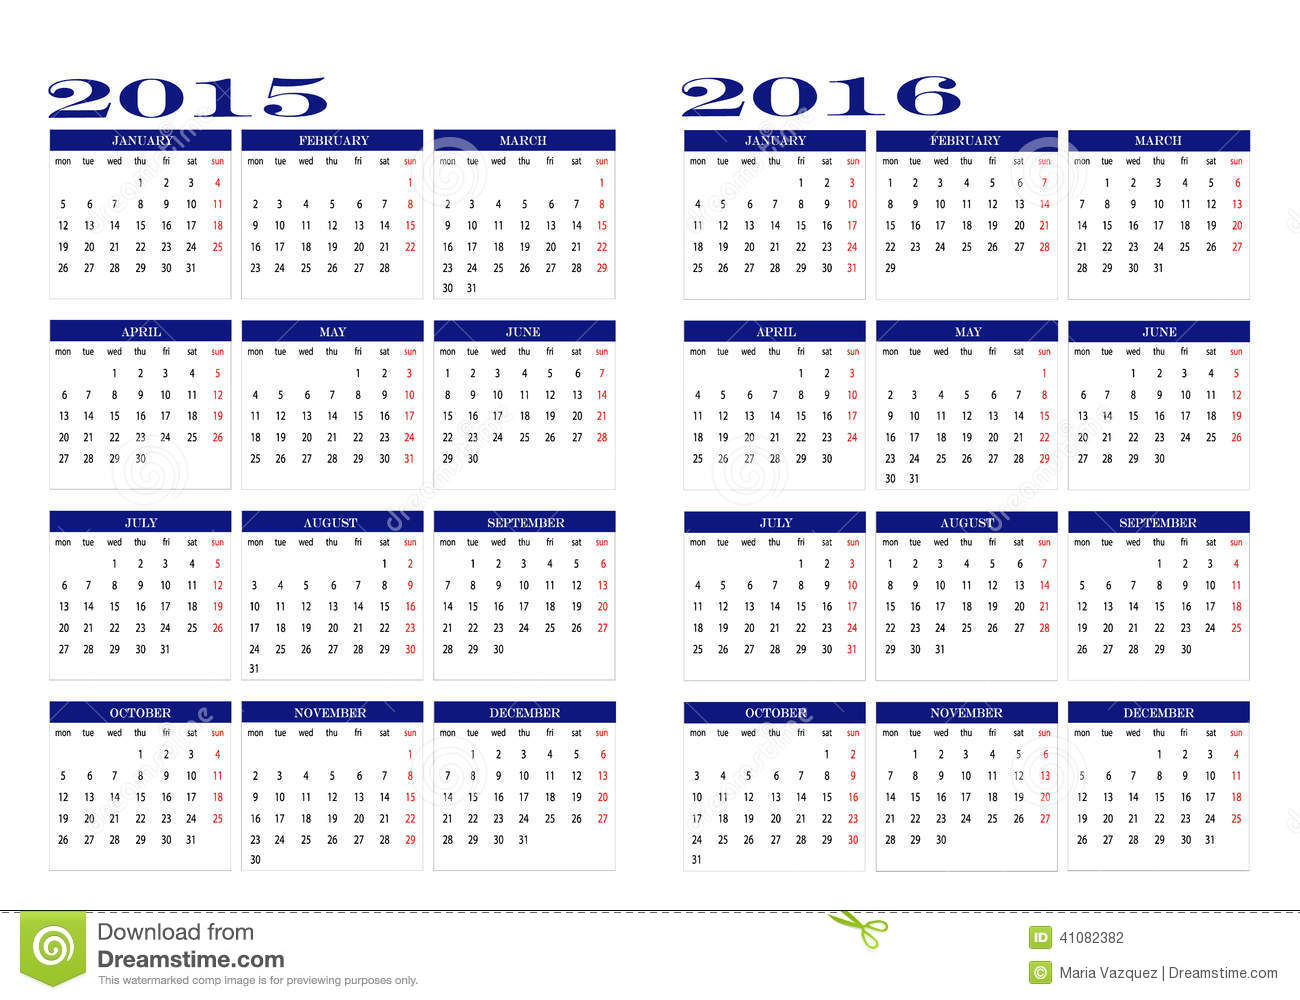 Calendar 2015 And 2016 Stock Vector - Image: 41082382